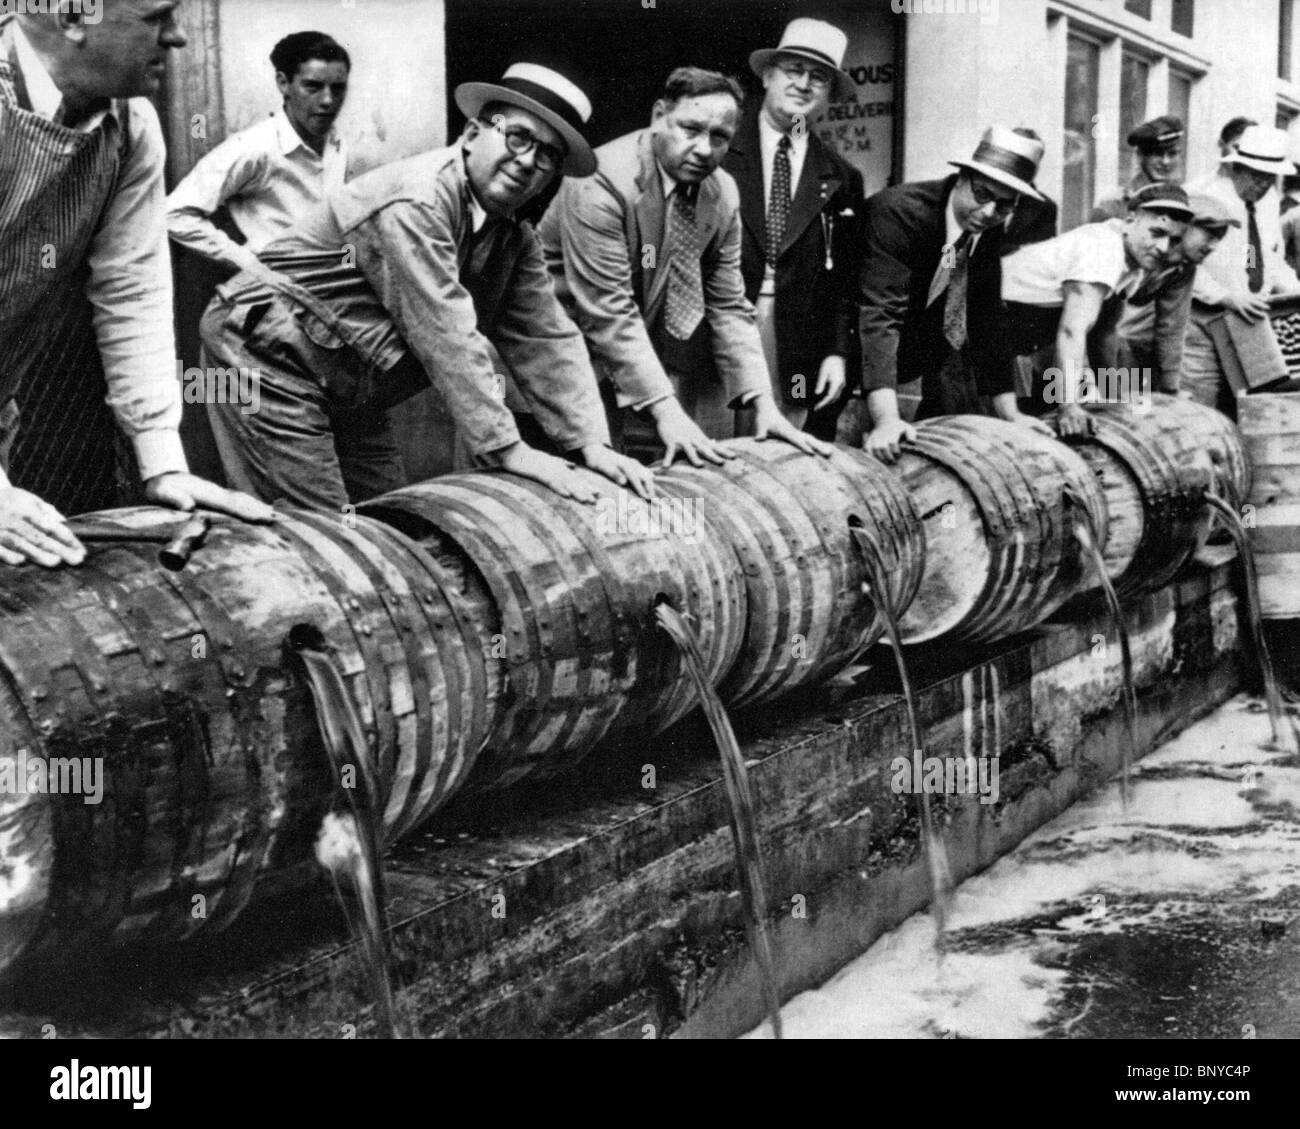 US PROHIBITION  US agents enforcing the law against bootleg liquor in the 1930s - Stock Image